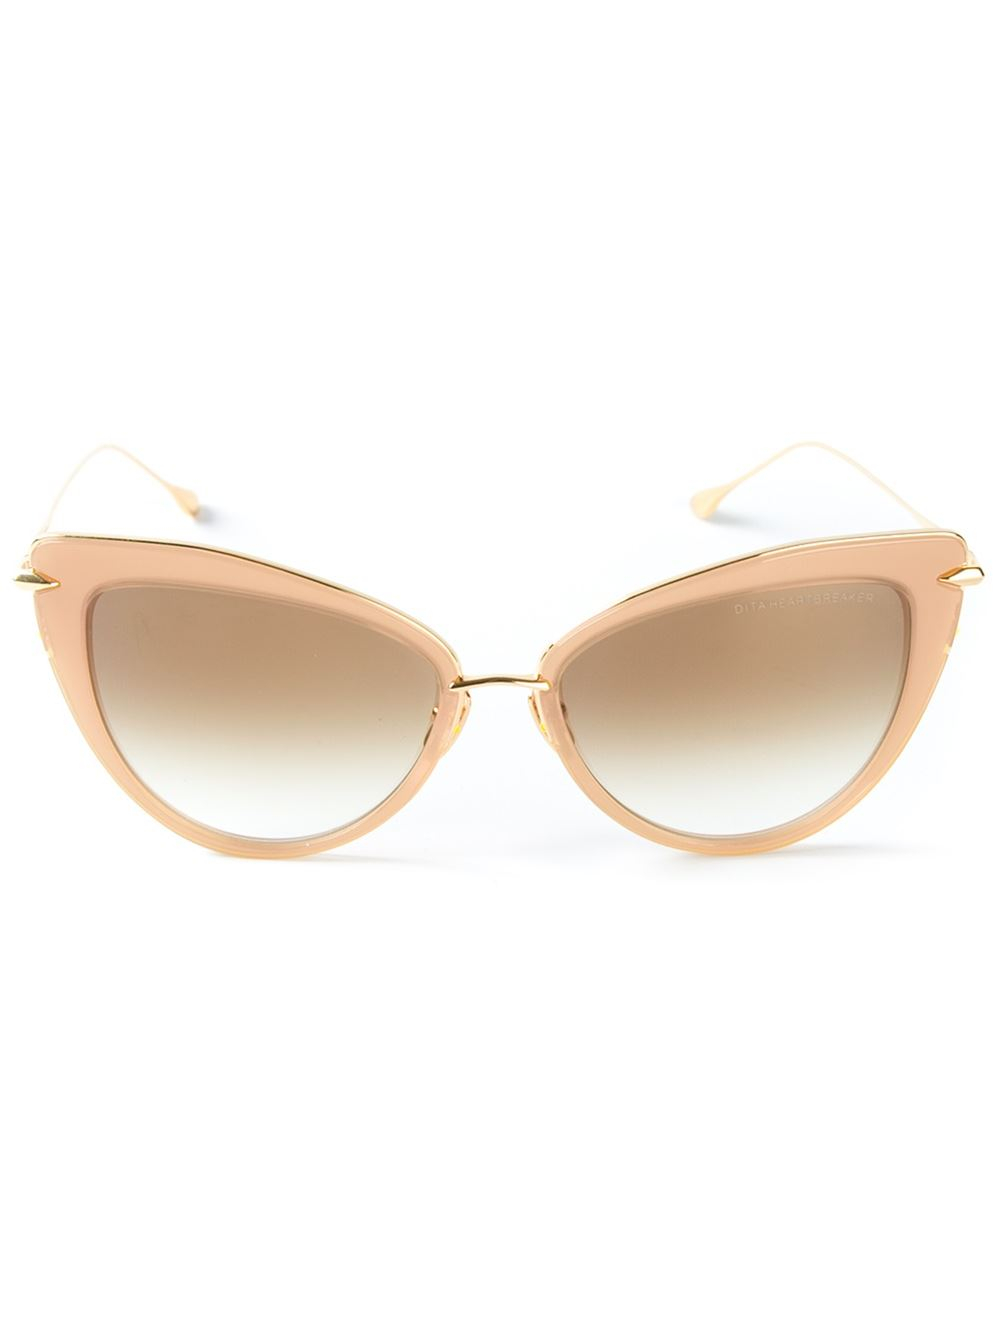 Dita eyewear 'Heartbreaker' Sunglasses in Natural | Lyst Dita Eyewear